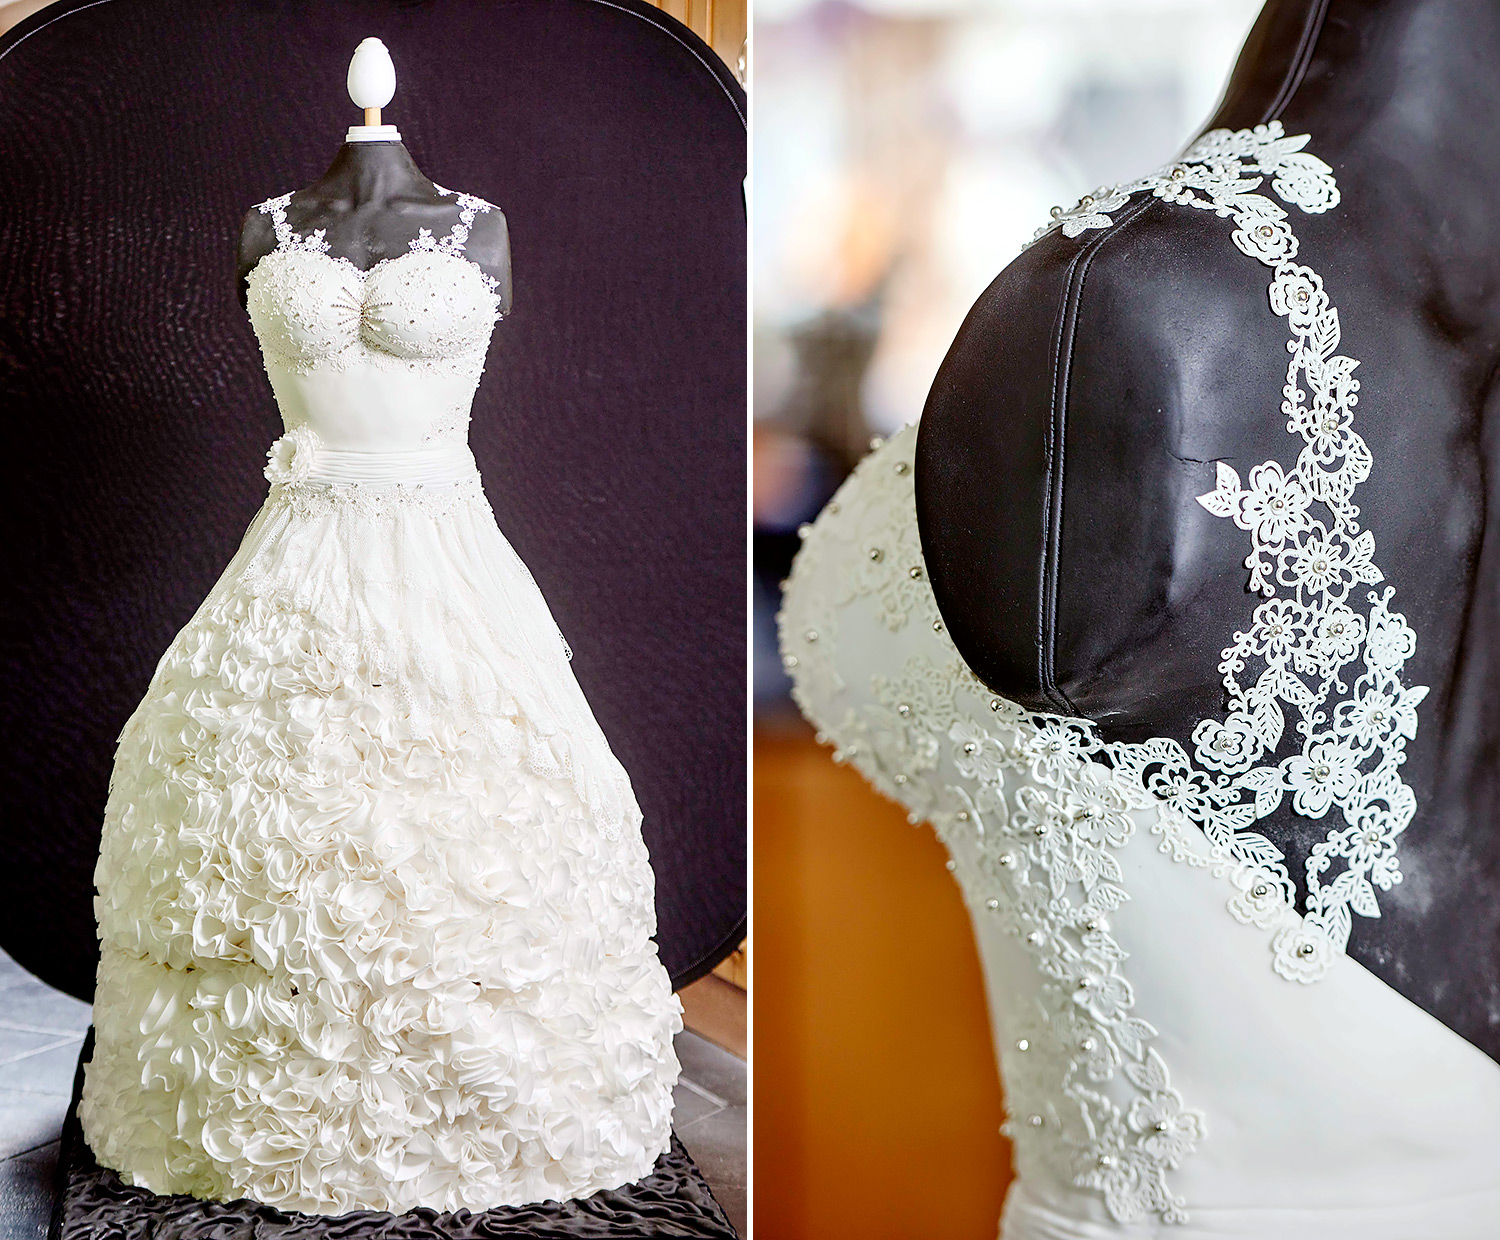 stunning wedding dress cake is 165 pounds and completely edible